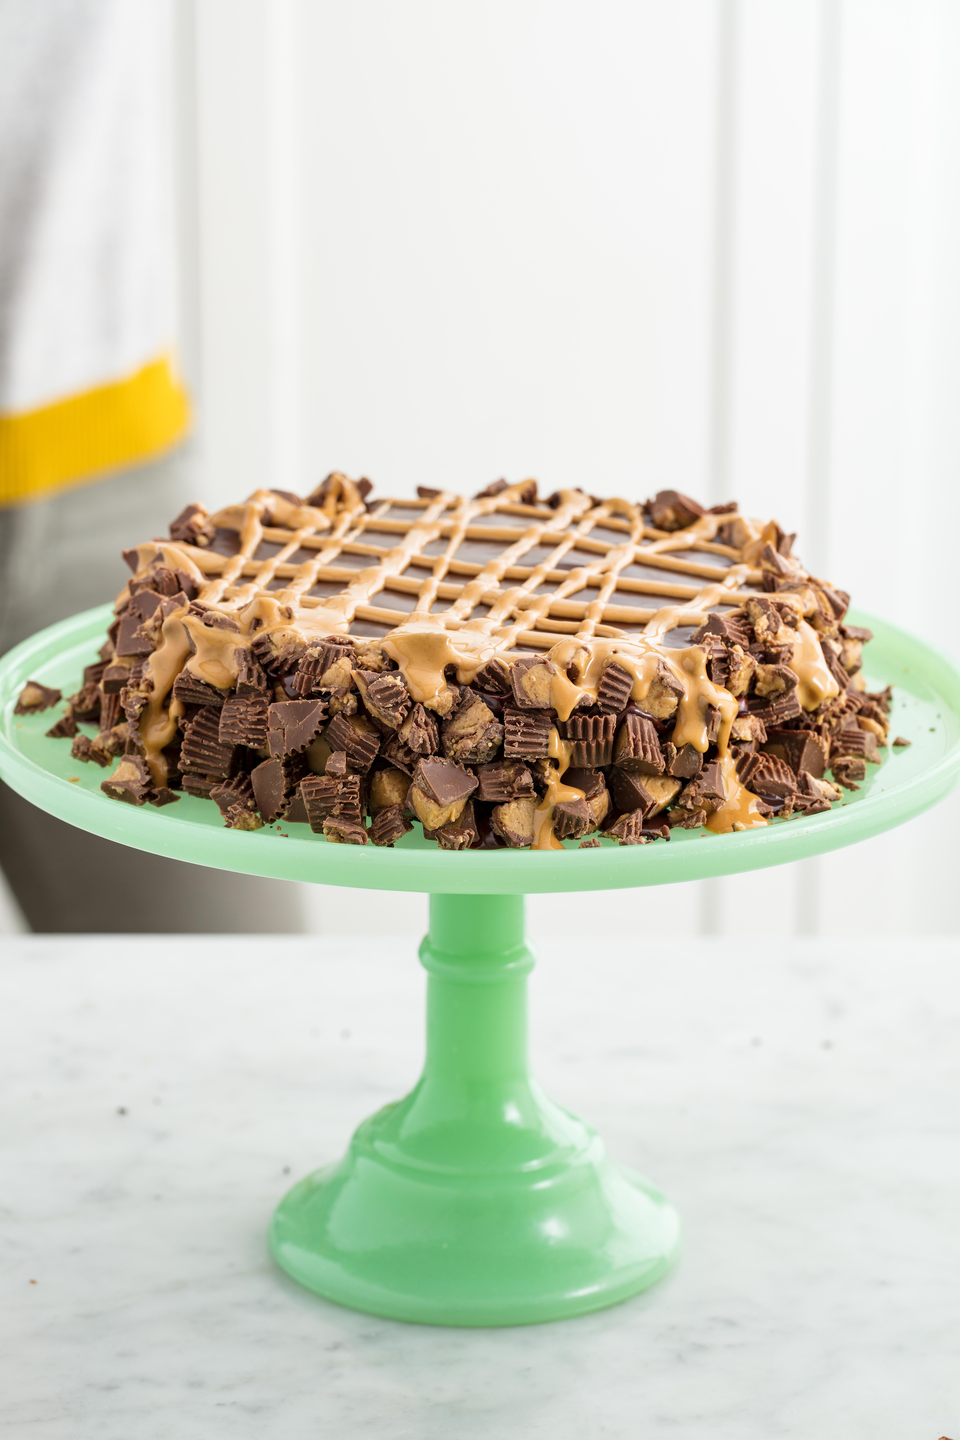 """<p>Peanut butter lovers, this is the dessert for you.</p><p>Get the recipe from <a href=""""https://www.delish.com/cooking/recipe-ideas/recipes/a53930/reeses-tiger-pie-recipe/"""" rel=""""nofollow noopener"""" target=""""_blank"""" data-ylk=""""slk:Delish"""" class=""""link rapid-noclick-resp"""">Delish</a>.</p>"""